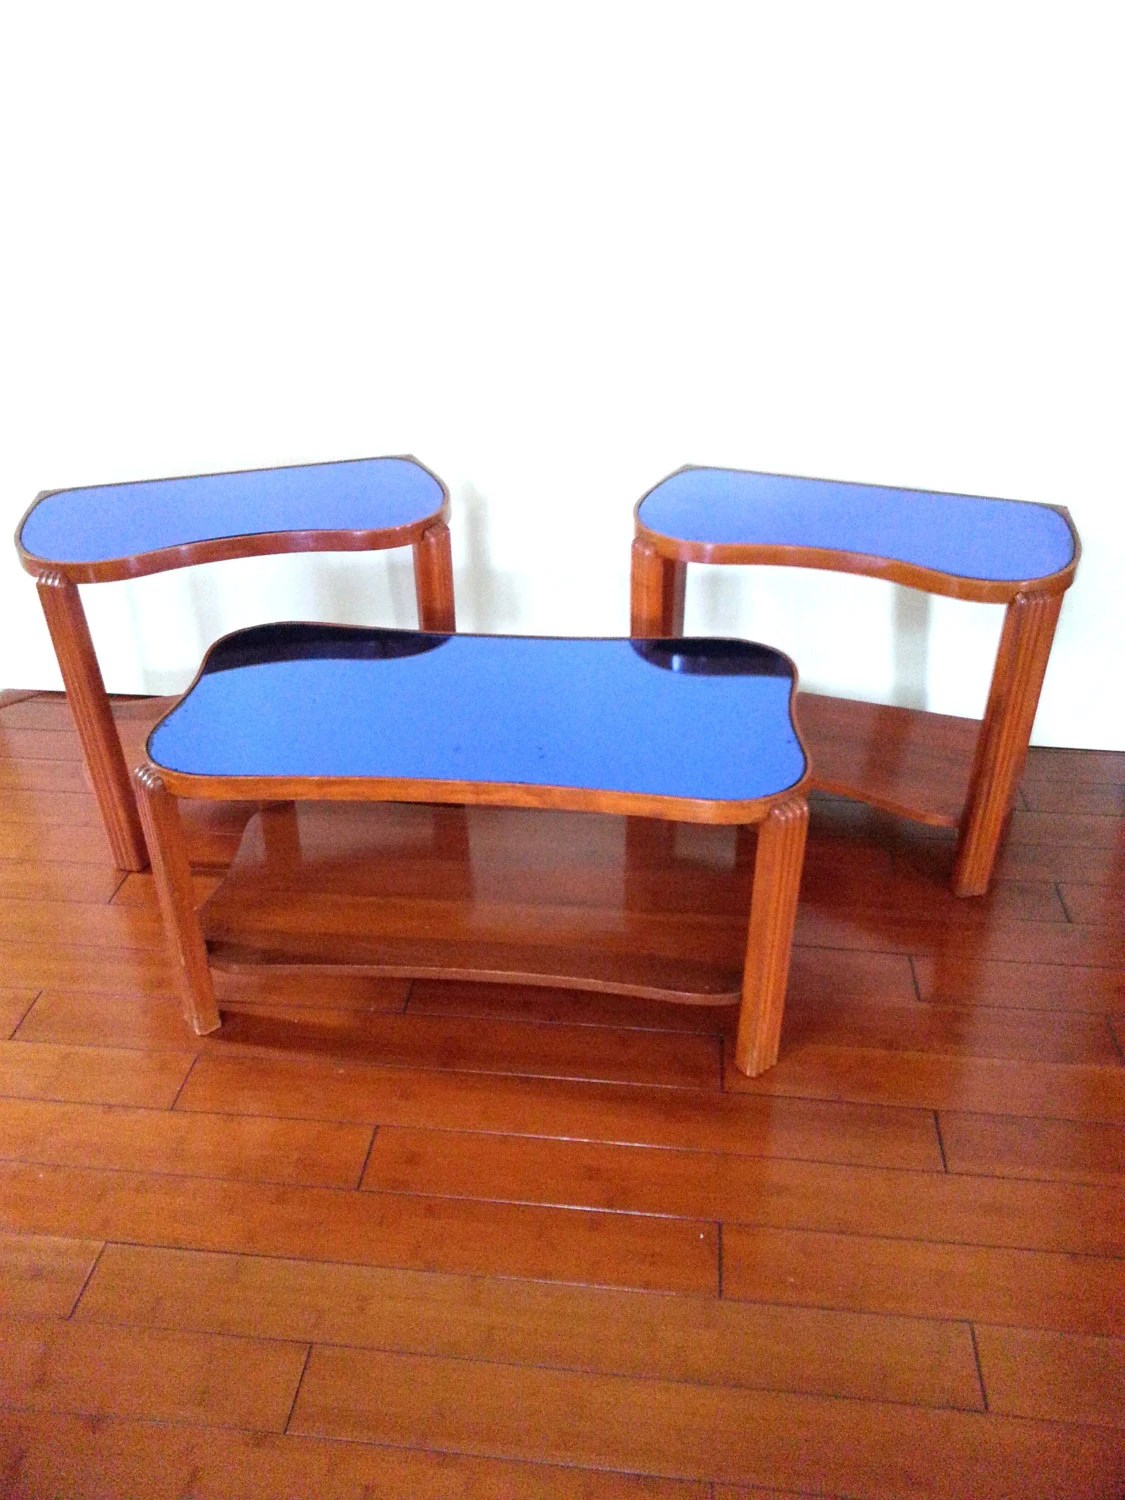 adrian pearsall rocking chair easy christmas covers 3 piece coffee table set vintage art deco 1940's blue